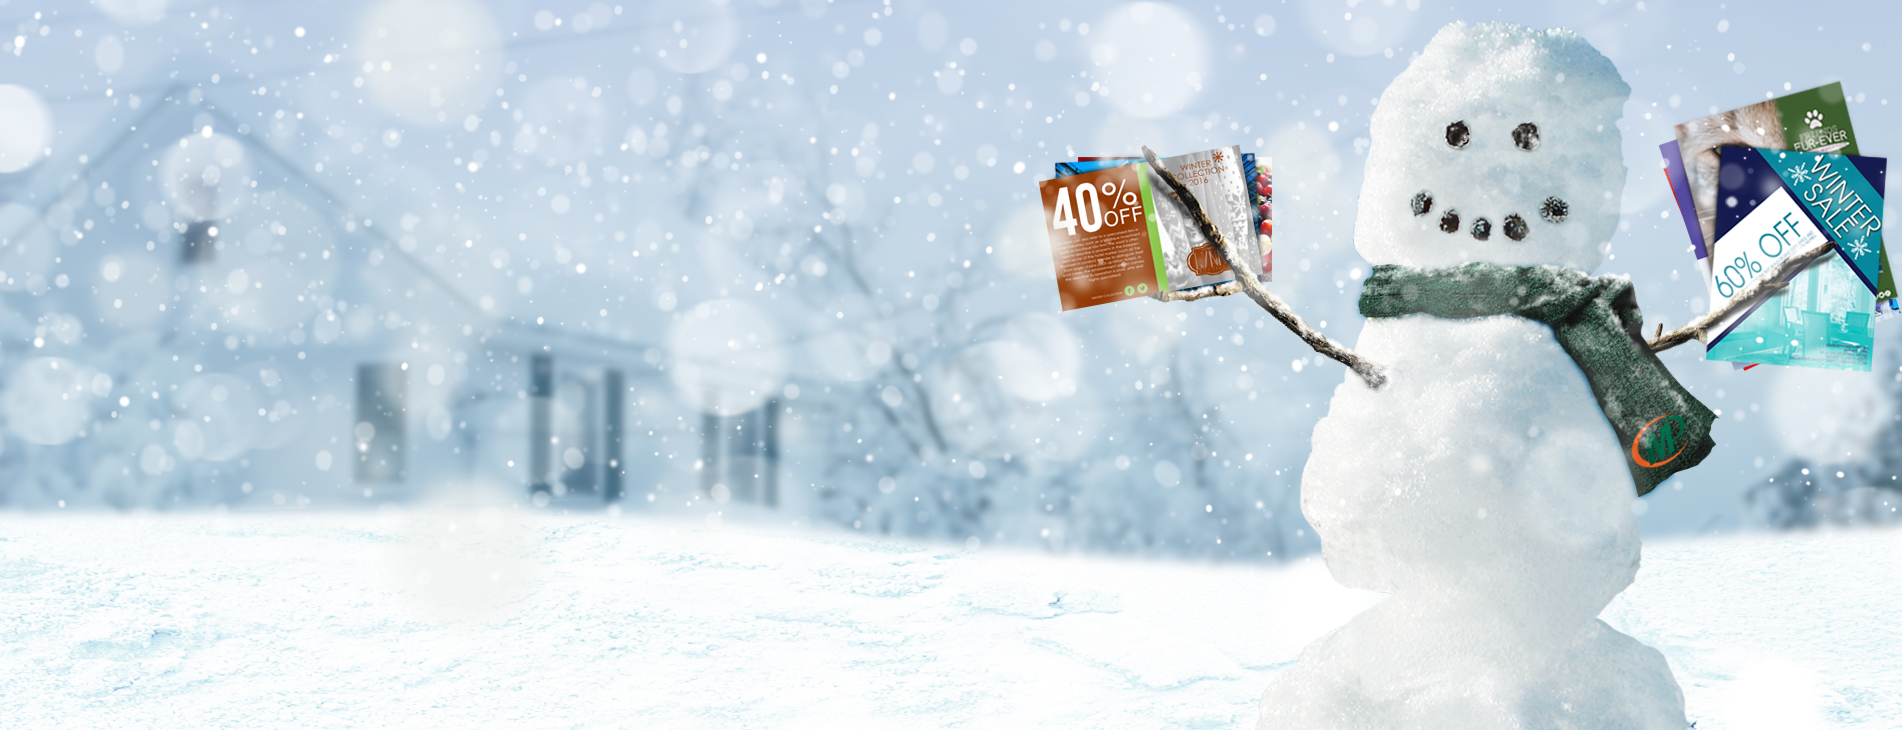 No matter the season, Frosty knows where to get his marketing material